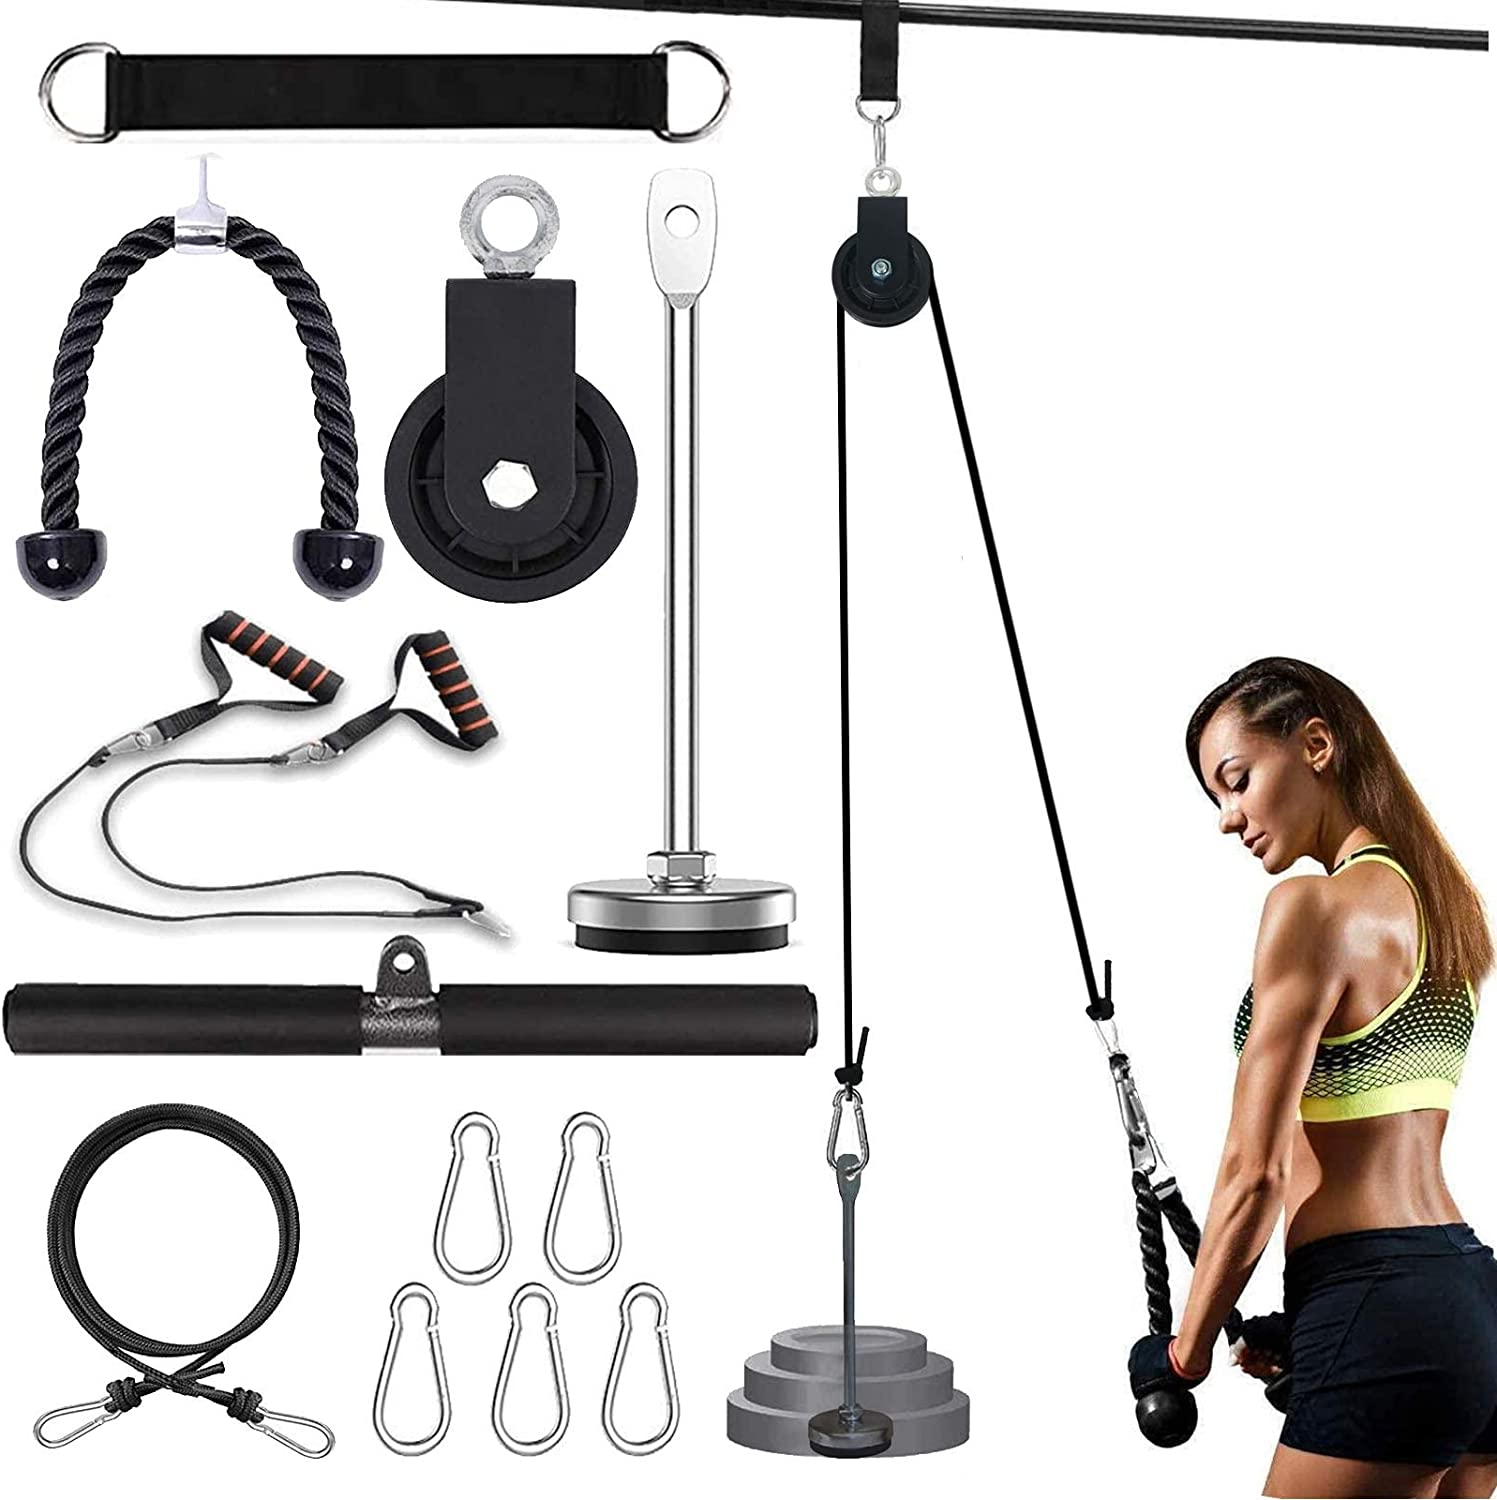 N V Pulley Cable Machine Large-scale sale with 3 Pul and Lift Handles Fitness Outlet ☆ Free Shipping LAT